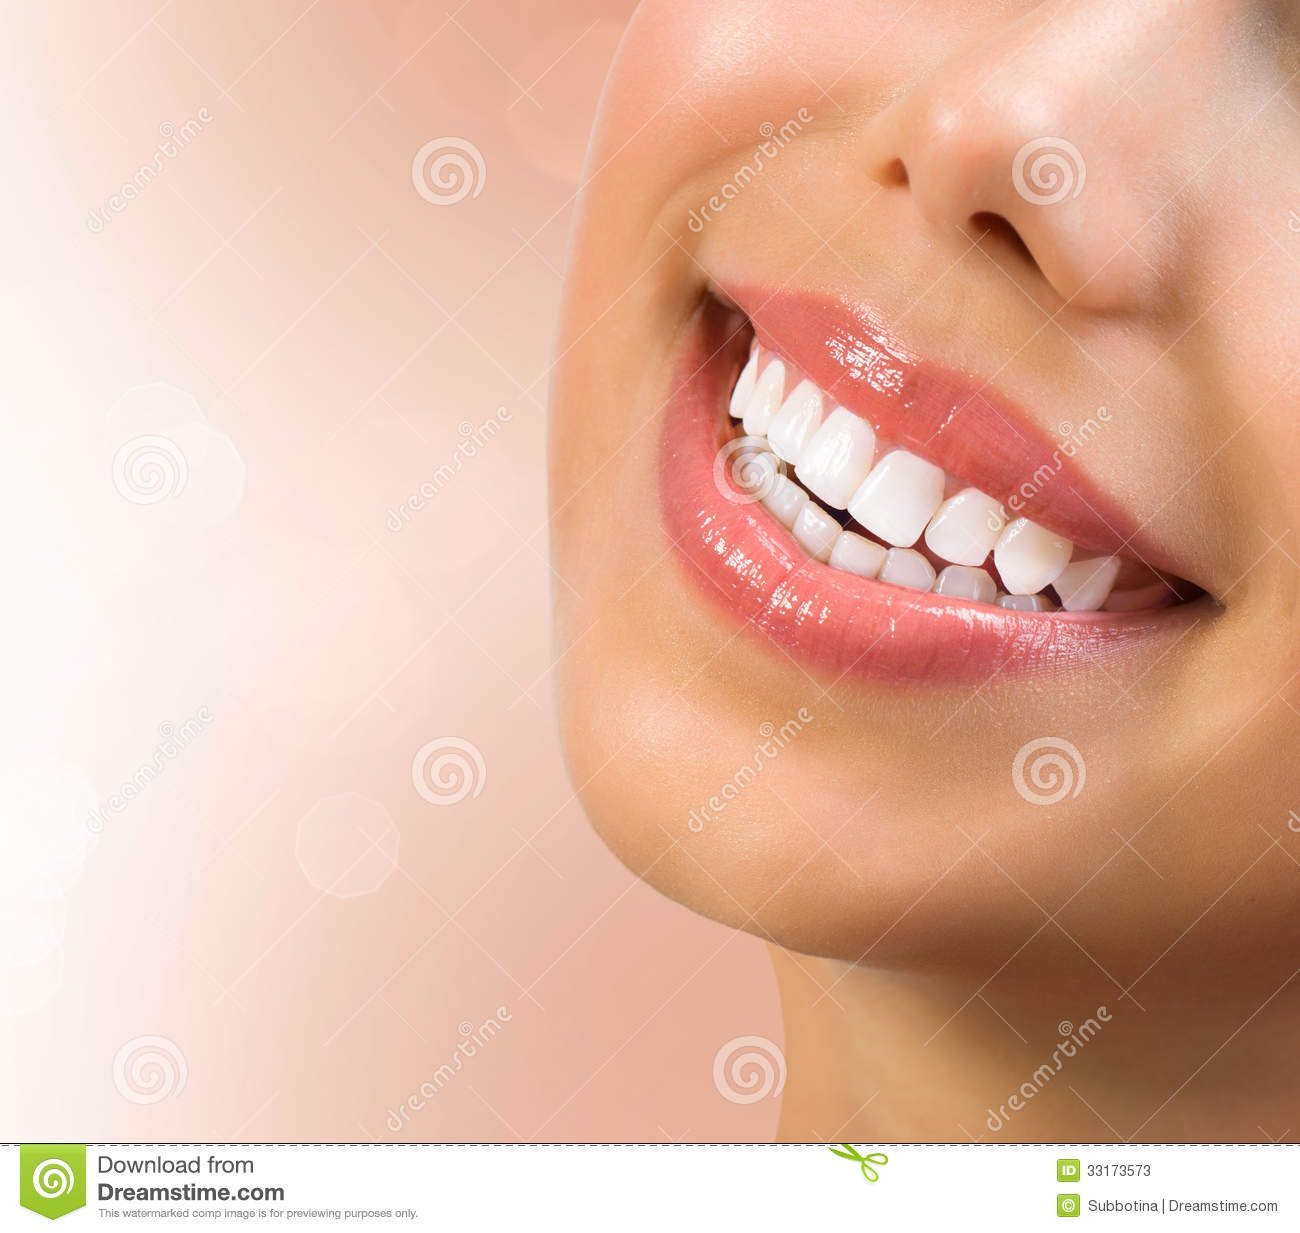 Teeth Whitening Comparison Davinci Teeth Whitening